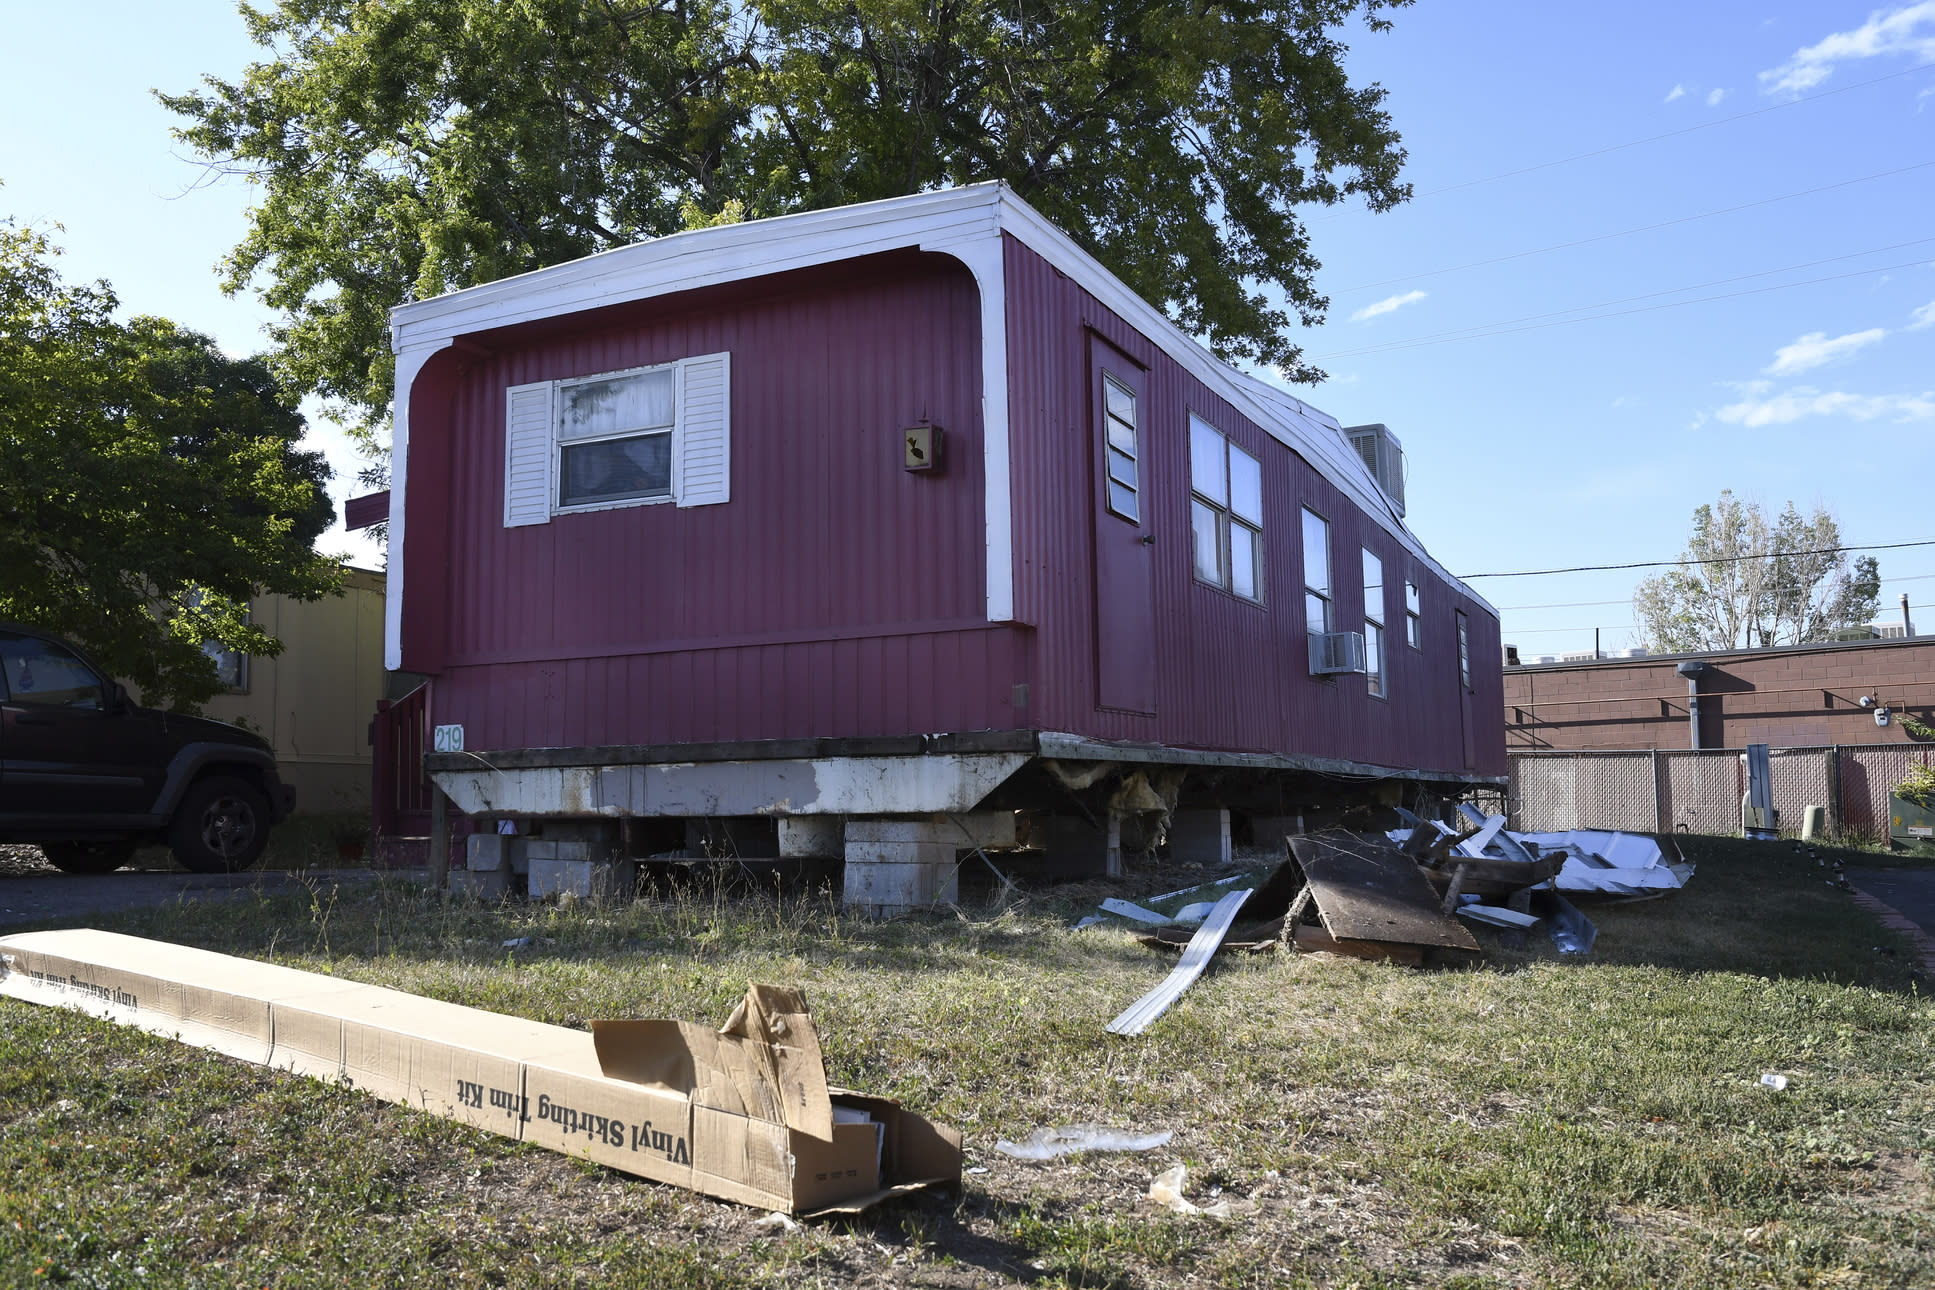 ADVANCE ON THURSDAY, SEPT. 12 FOR USE ANY TIME AFTER 3:01 A.M. SUNDAY SEPT 15 - In this Aug. 30th 2019 photo shows a home sitting with a vinyl skirting kit in boxes on the ground, seemingly ready for replacement at Lamplighter Village, a manufactured and mobile home park in Federal Heights, Colo. Across Colorado, where the housing crisis impacts both rural and urban towns, the strife between mobile home park residents and park owners approaches a boiling point. The business model -- in which homeowners pay lot rent to park their houses on someone else's land -- capitalizes on the immobility and economic fragility of tenants who often can't afford to move or live anywhere else. (Kathryn Scott/The Colorado Sun)